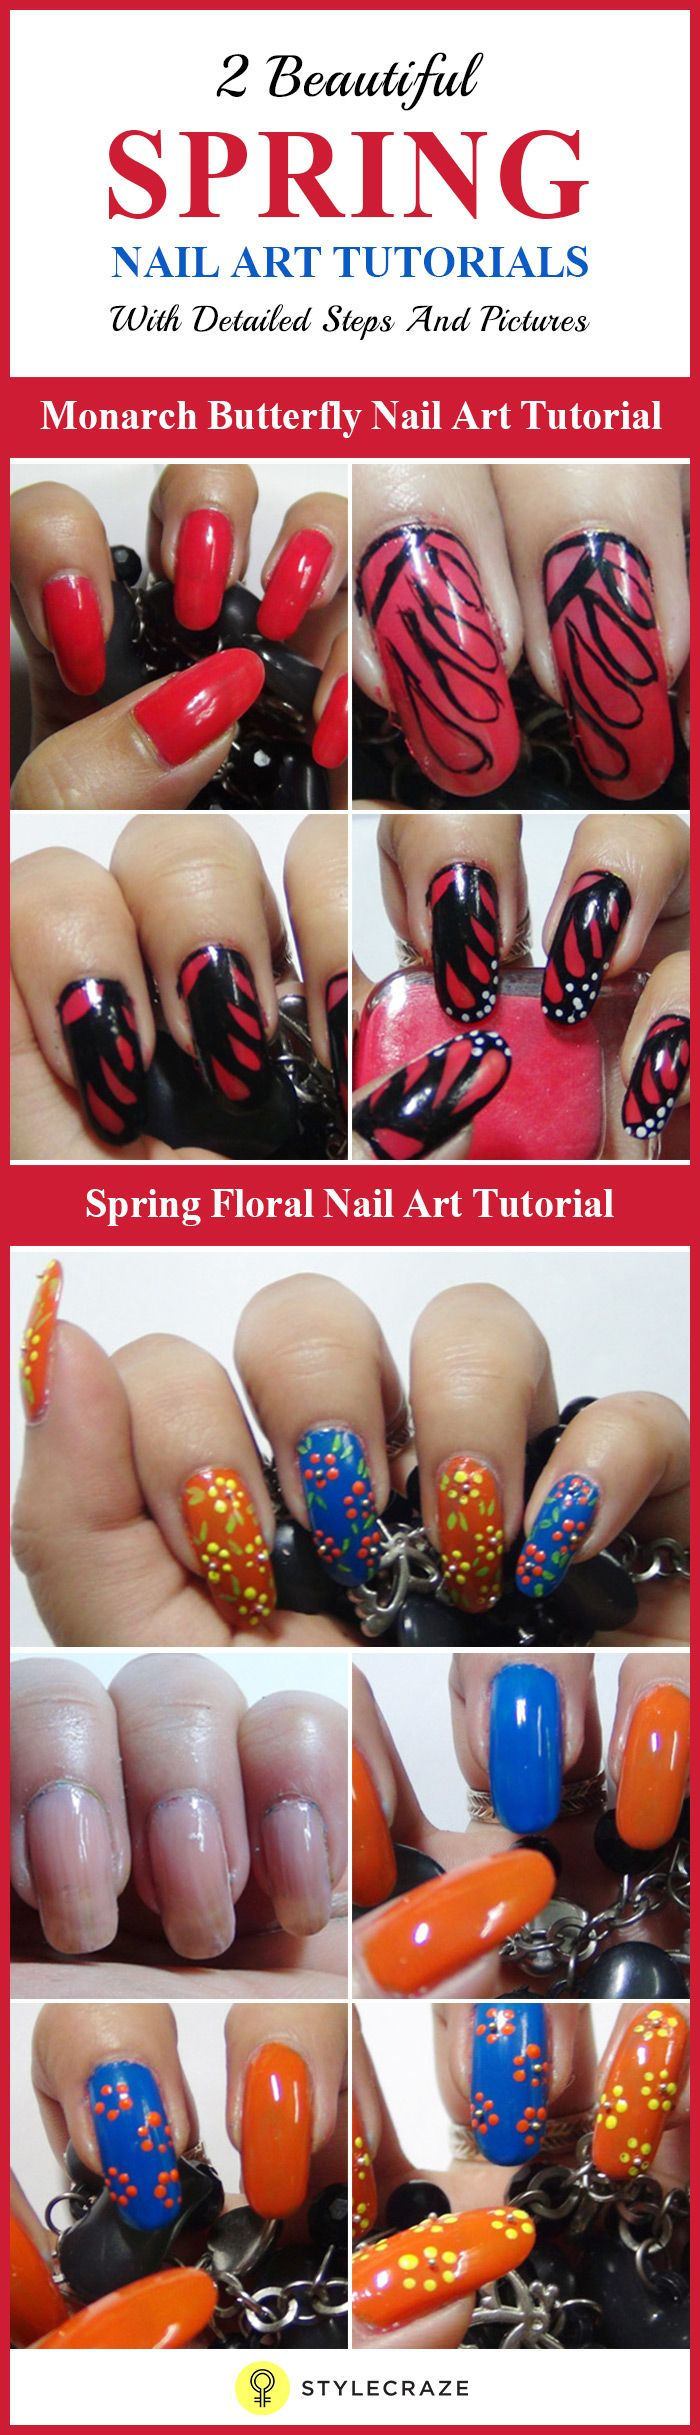 How To Do Nail Art At Home Bright Colored Nails Spring Nails And